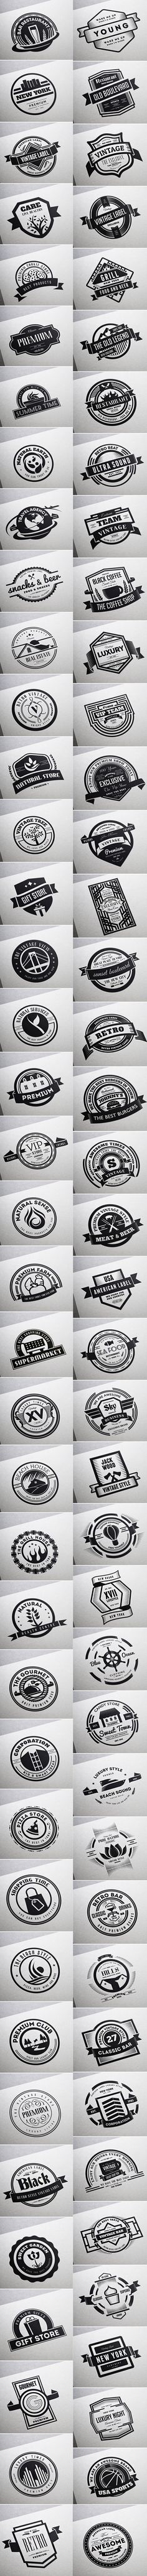 80 Retro Vintage Labels and Badges that you can use on Logos with emblem style, on beer labels, restaurants, coffee shops, bar and other places. Also you can use them on modern labels with a touch of Vintage style for your Website, Business, Stickers, T-s…